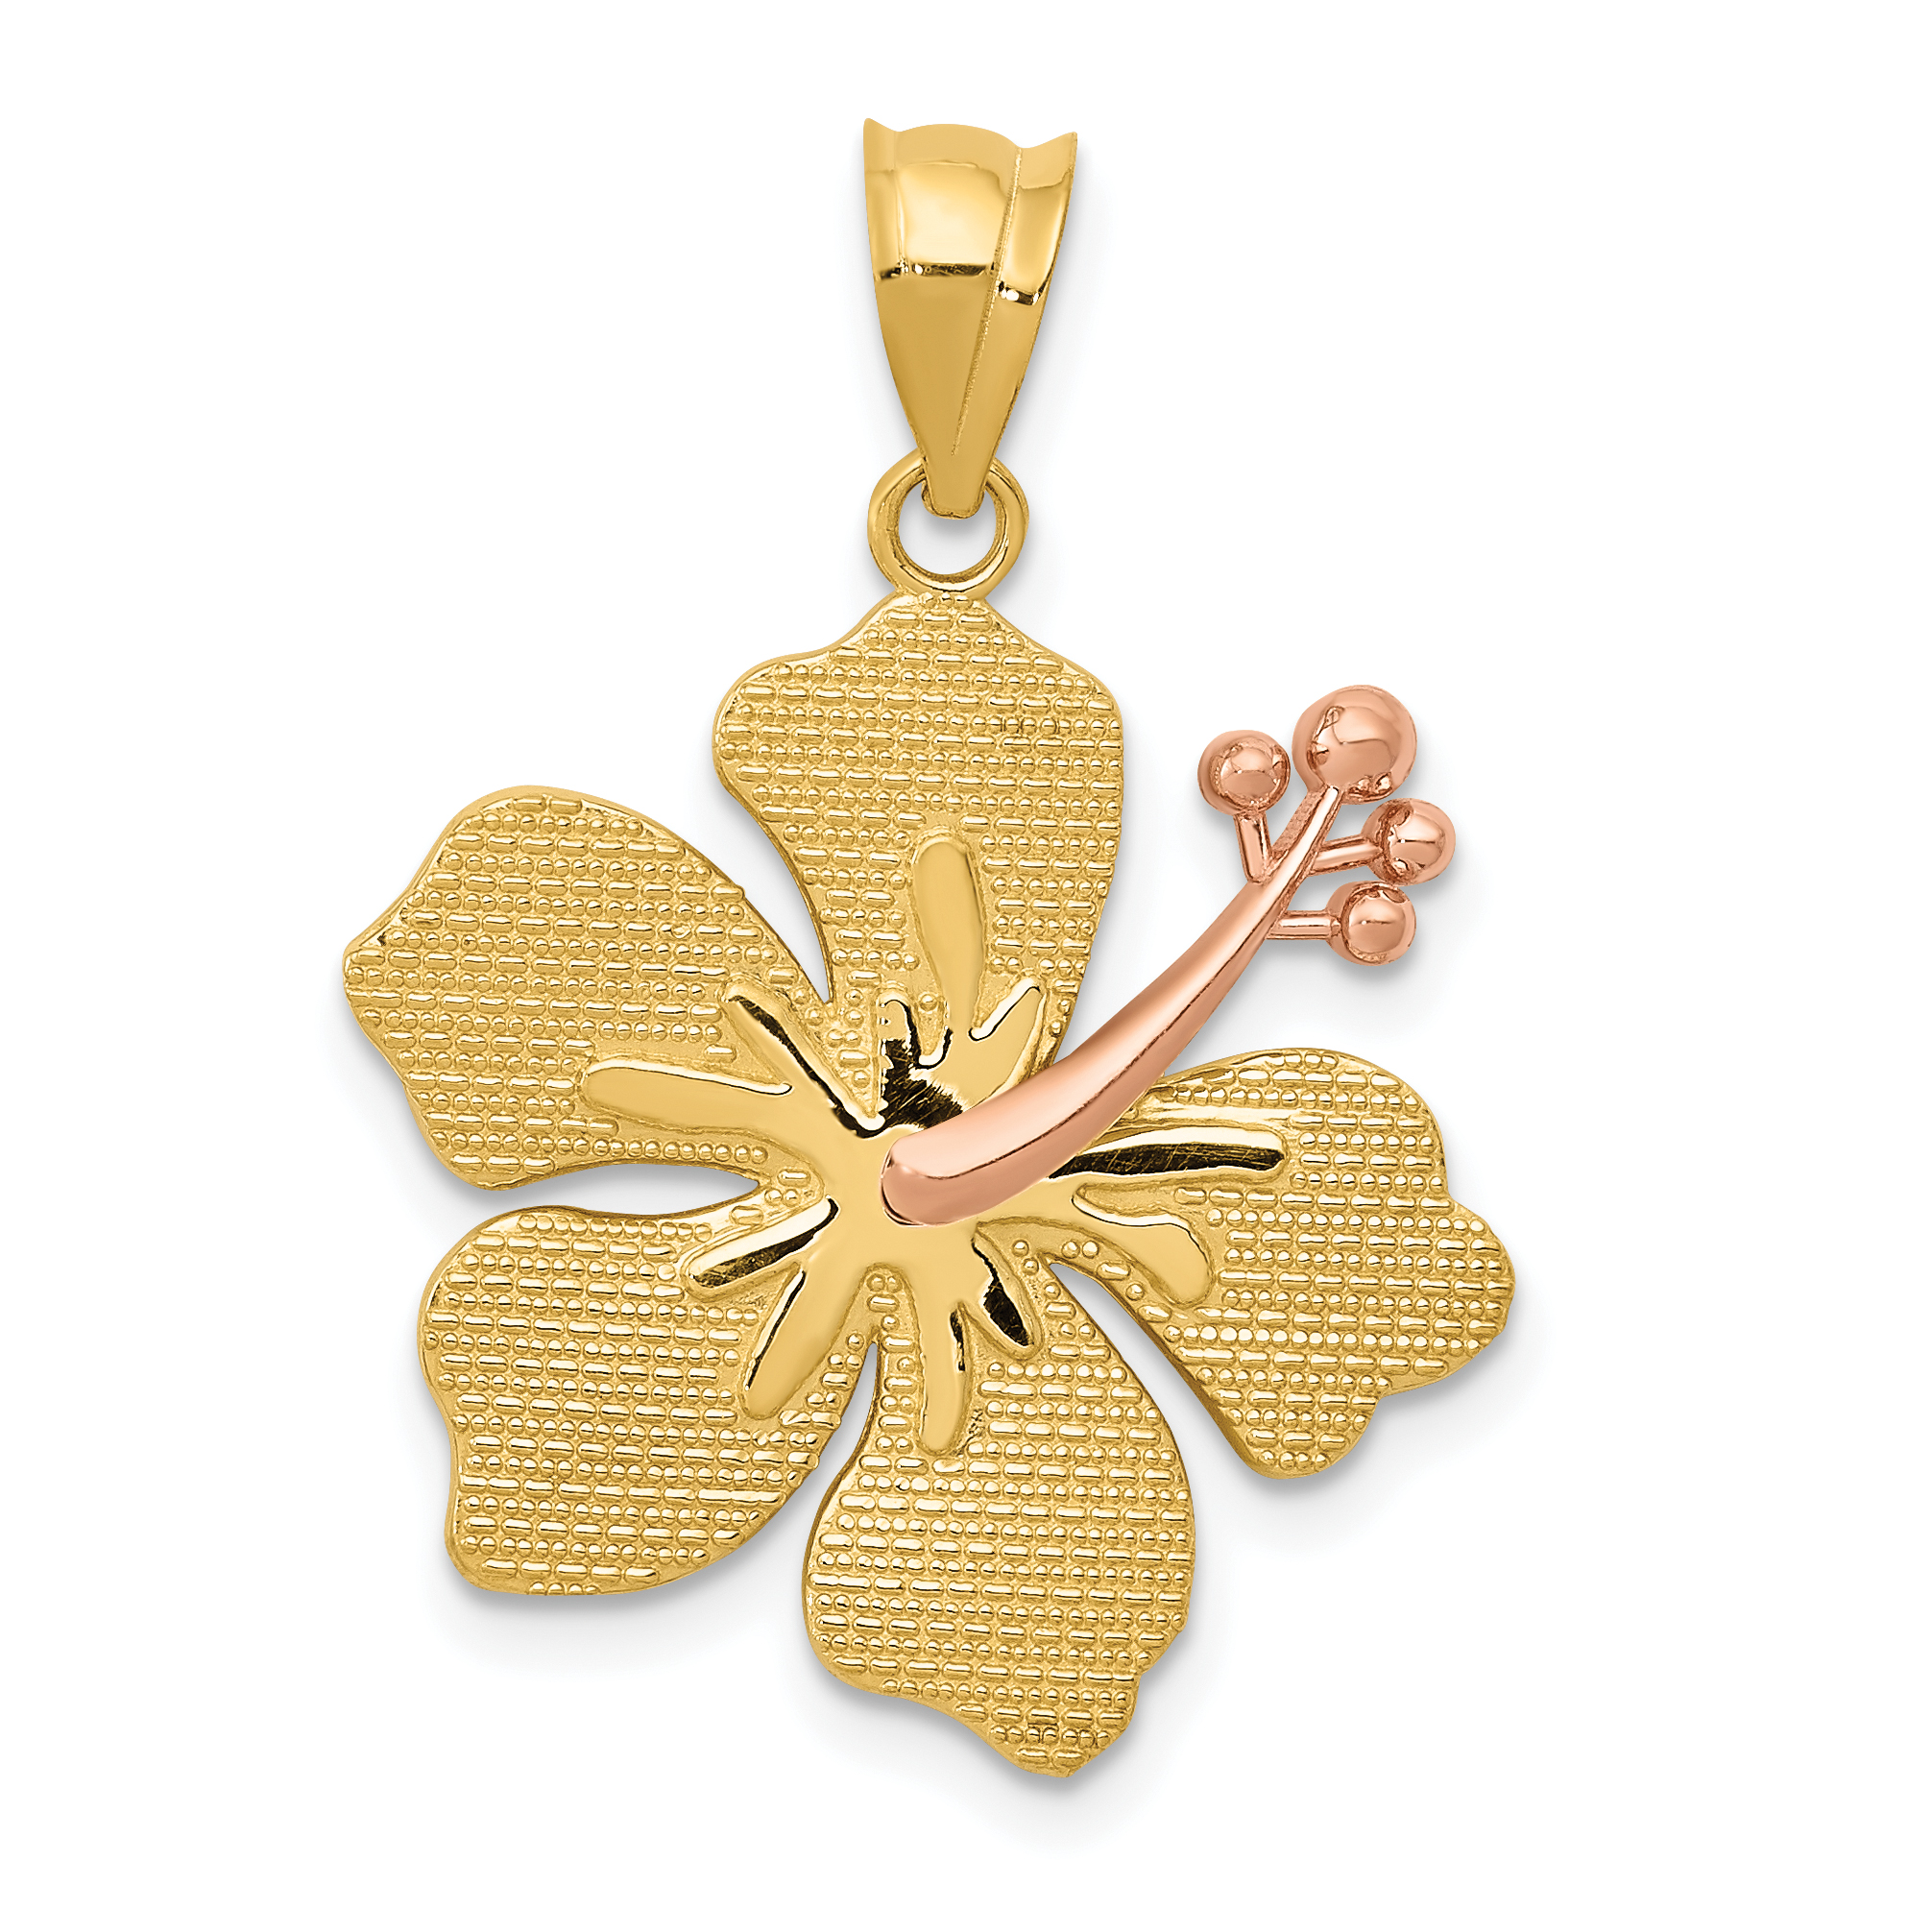 20mm hibiscus flower pendant in 14k yellow and rose gold ebay 20mm hibiscus flower pendant in 14k yellow and rose gold izmirmasajfo